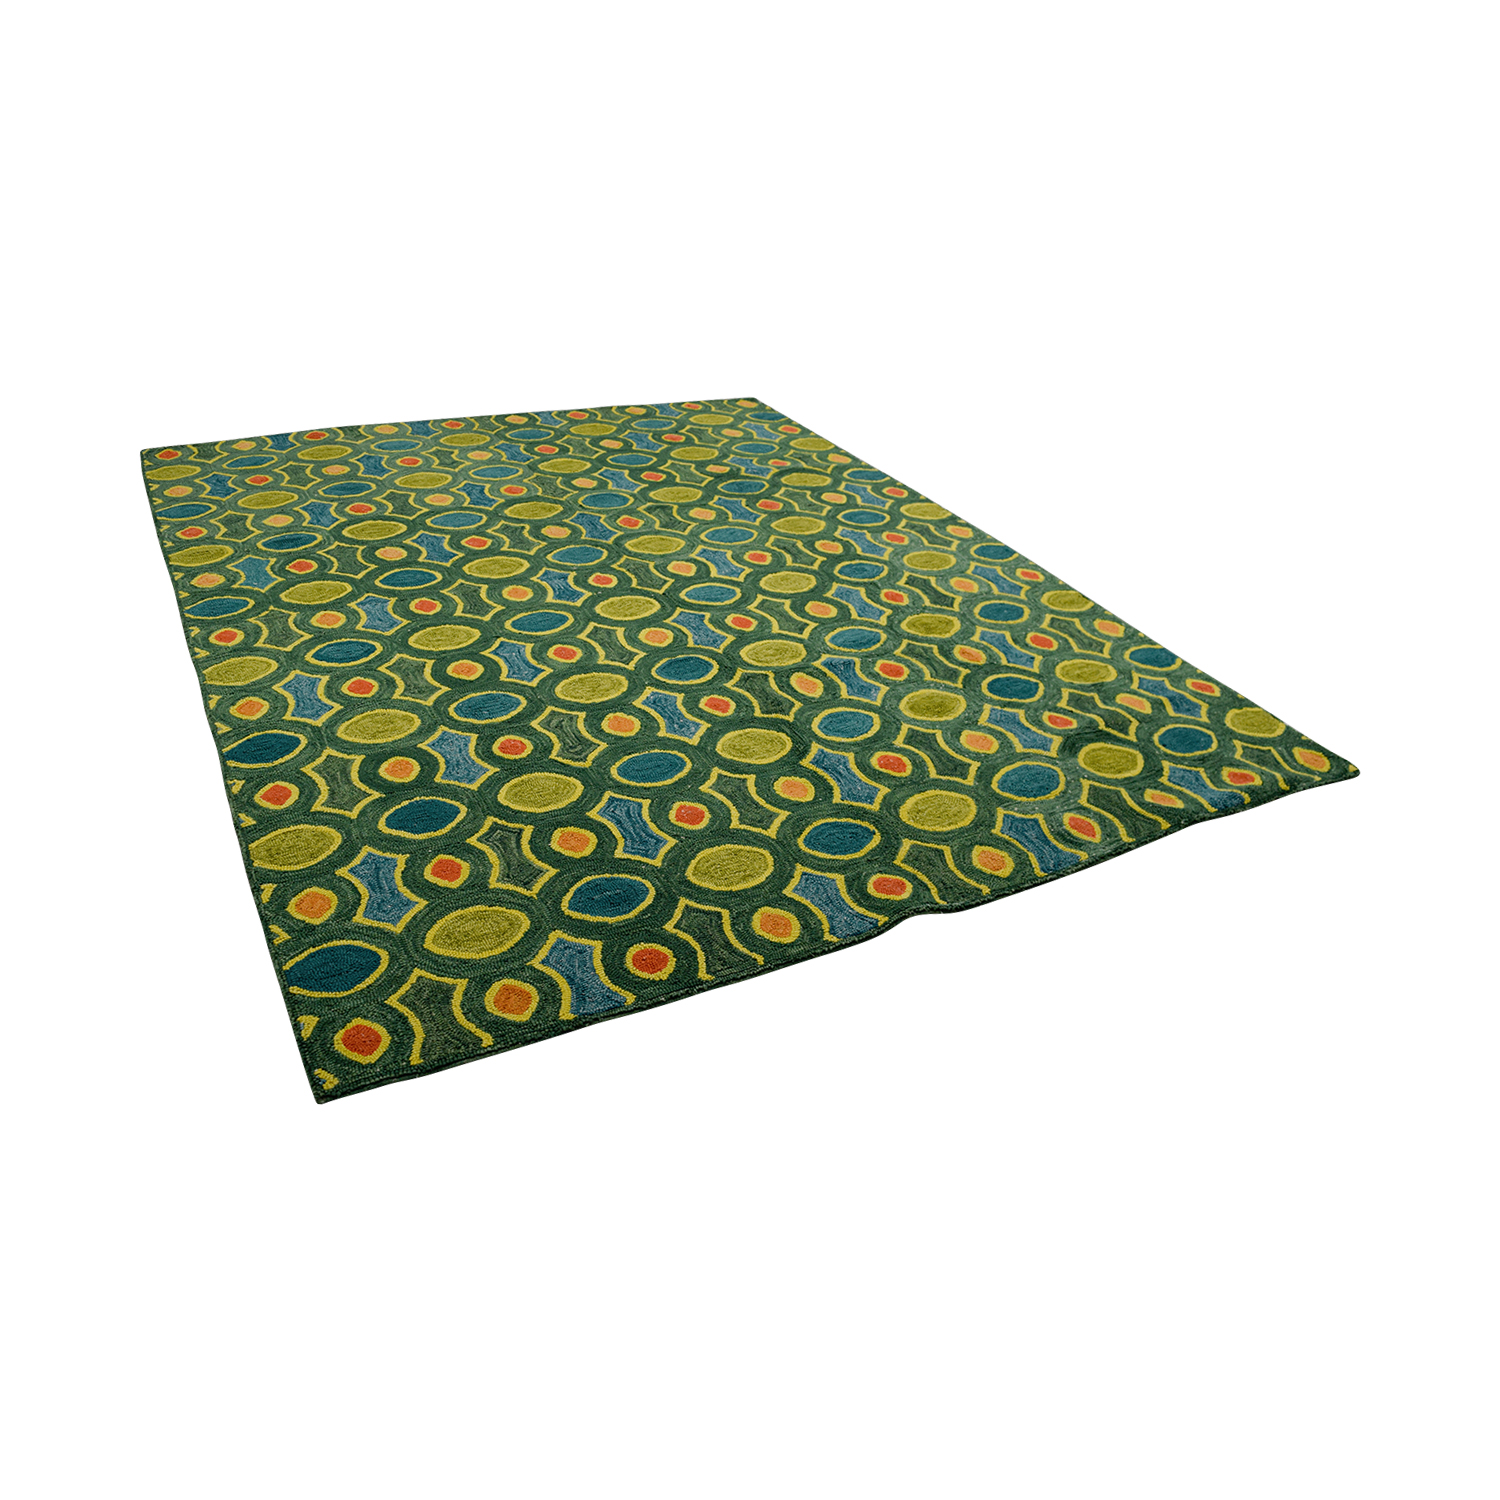 Obeetee Obeetee Hand Hooked Green Orange Blue Rug price